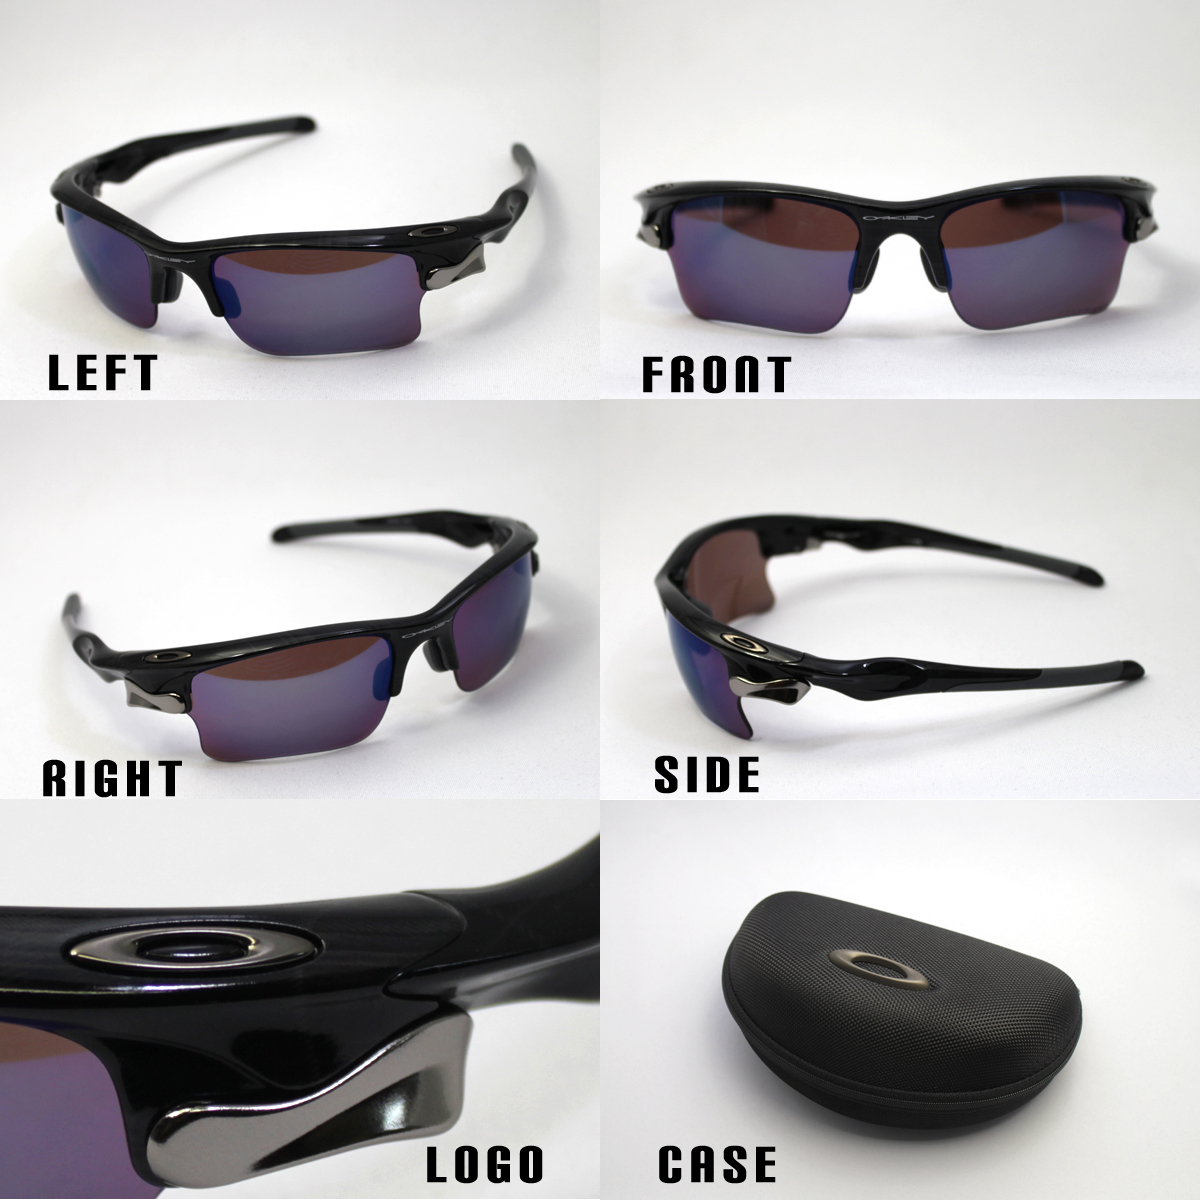 fast jacket oakley sunglasses qtcq  oo9163-04 Oakley Polarized Sunglasses fast jacket XL Asian fit OAKLEY FAST  JACKET XL ASIAN